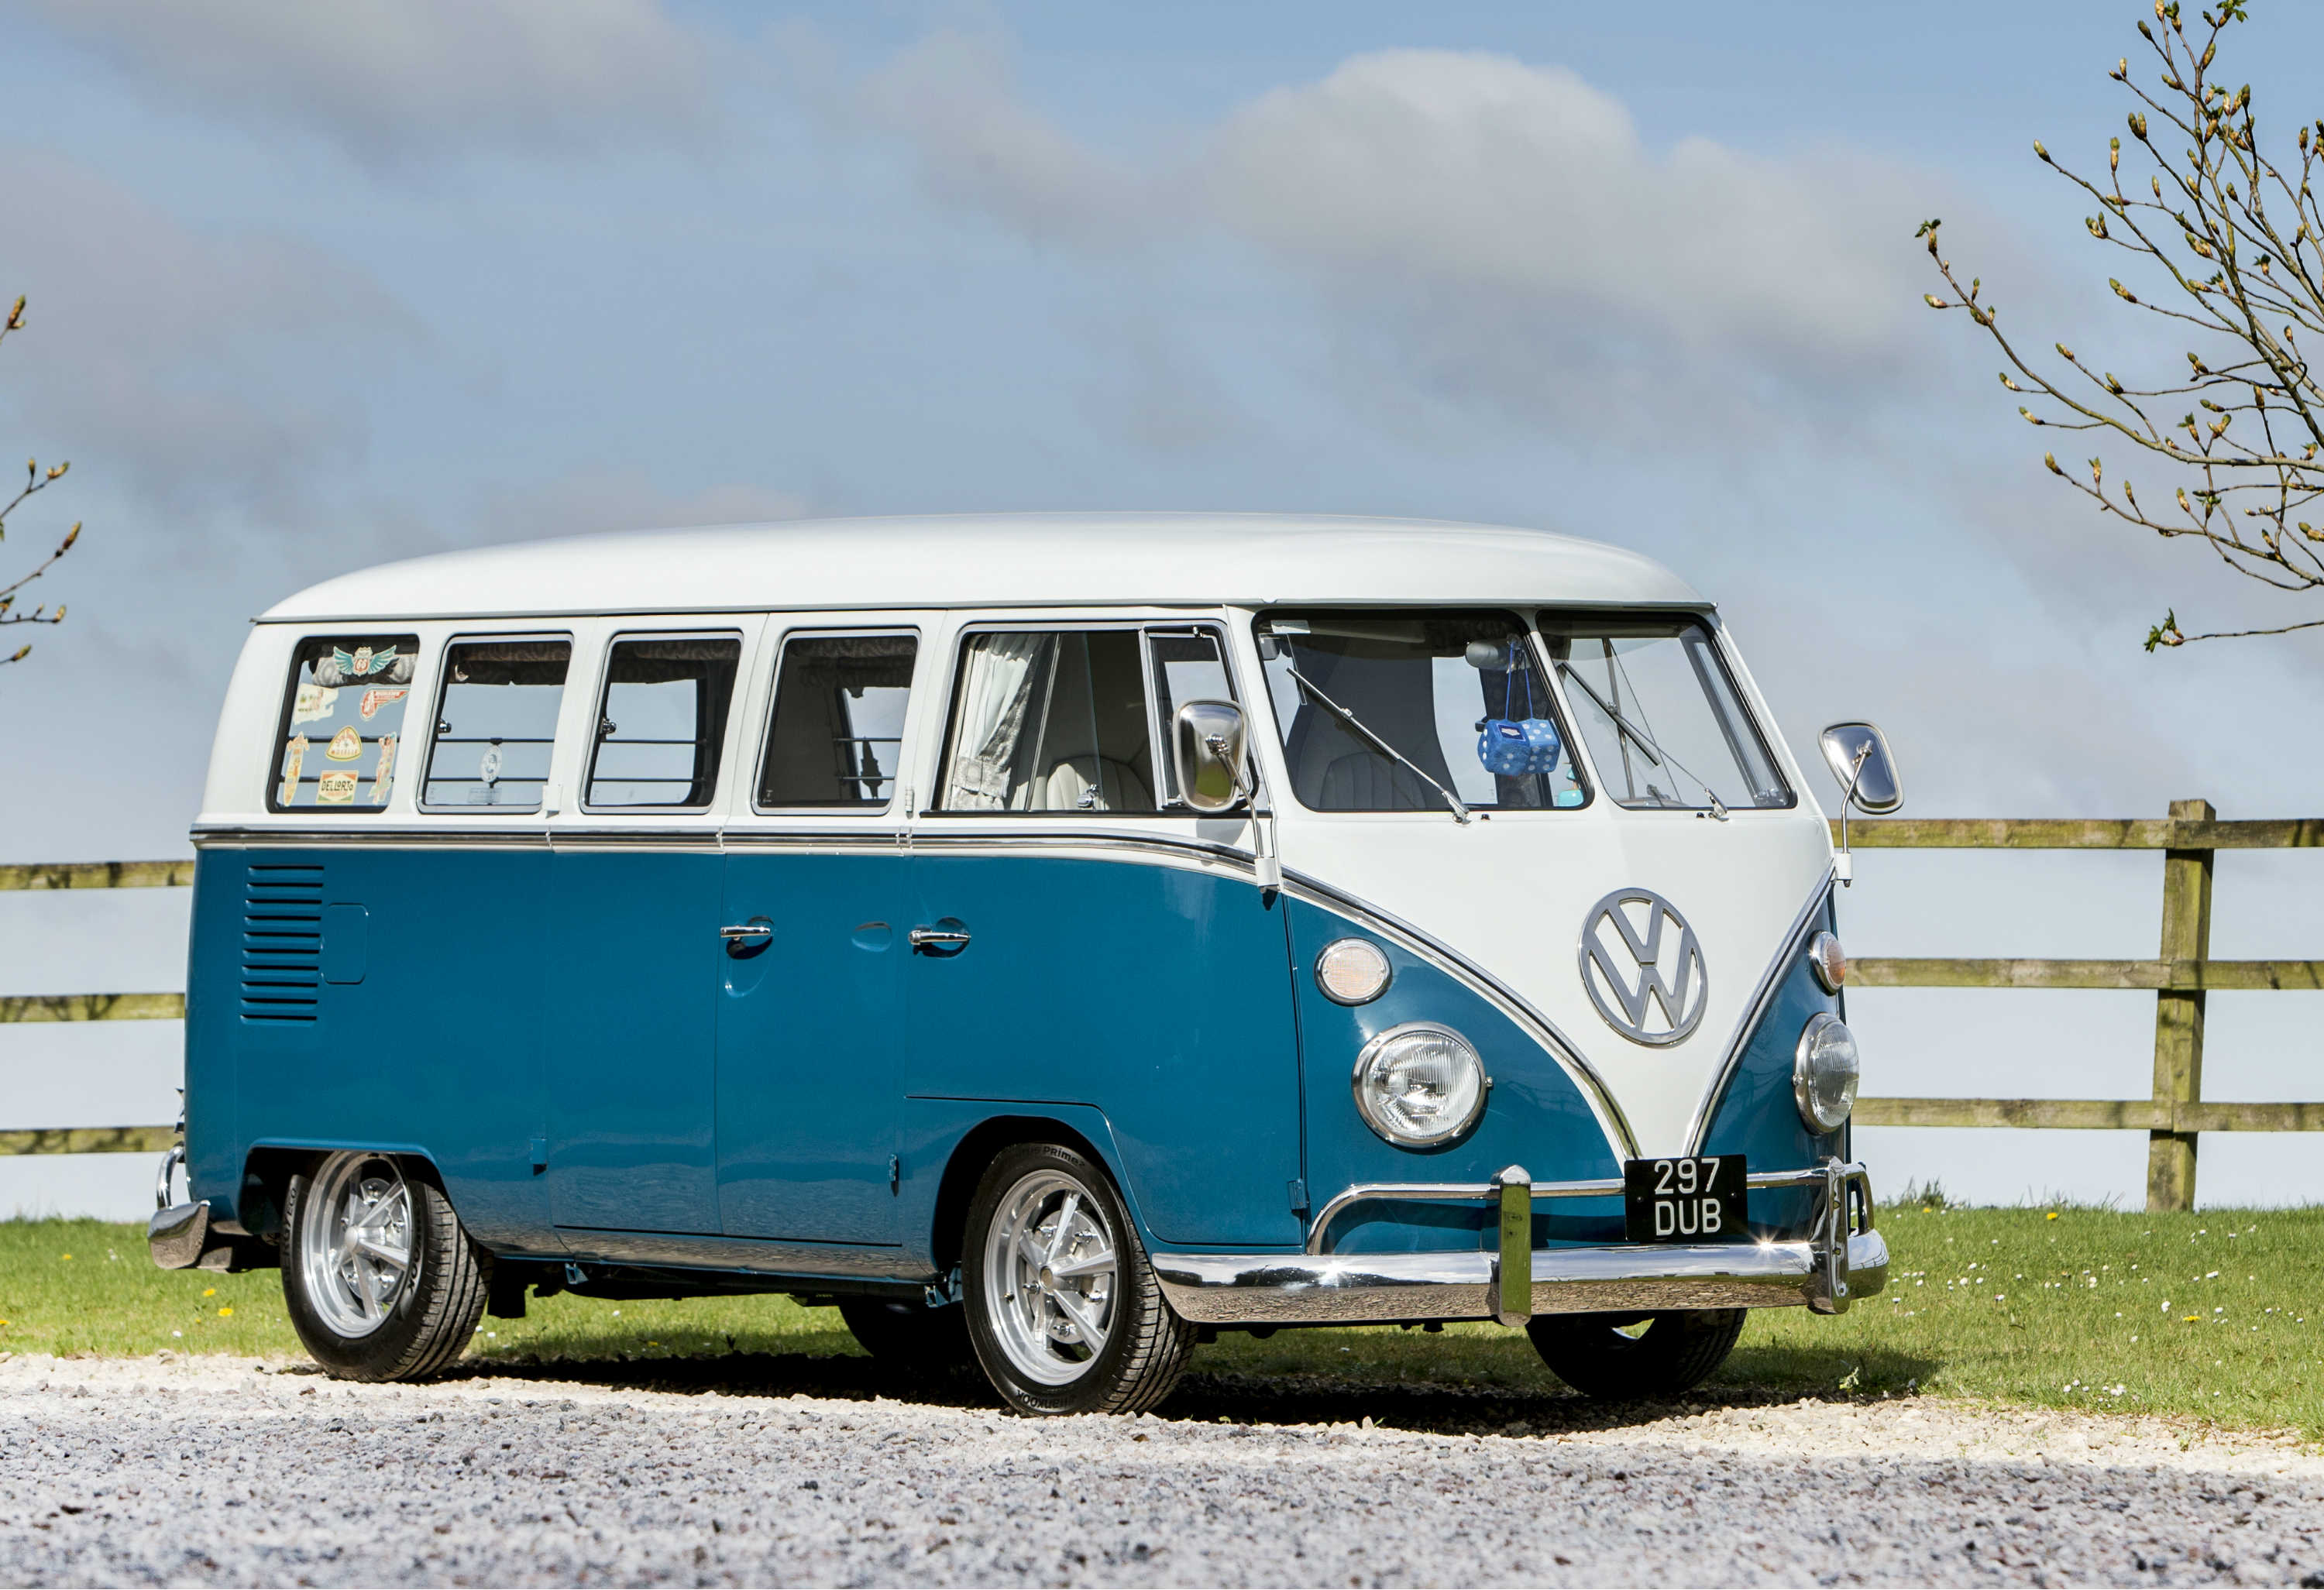 A fully restored 1967 volkswagen t1 camper worth 90000 in the uk a fully restored 1967 volkswagen t1 camper worth 90000 in the uk torque thecheapjerseys Choice Image